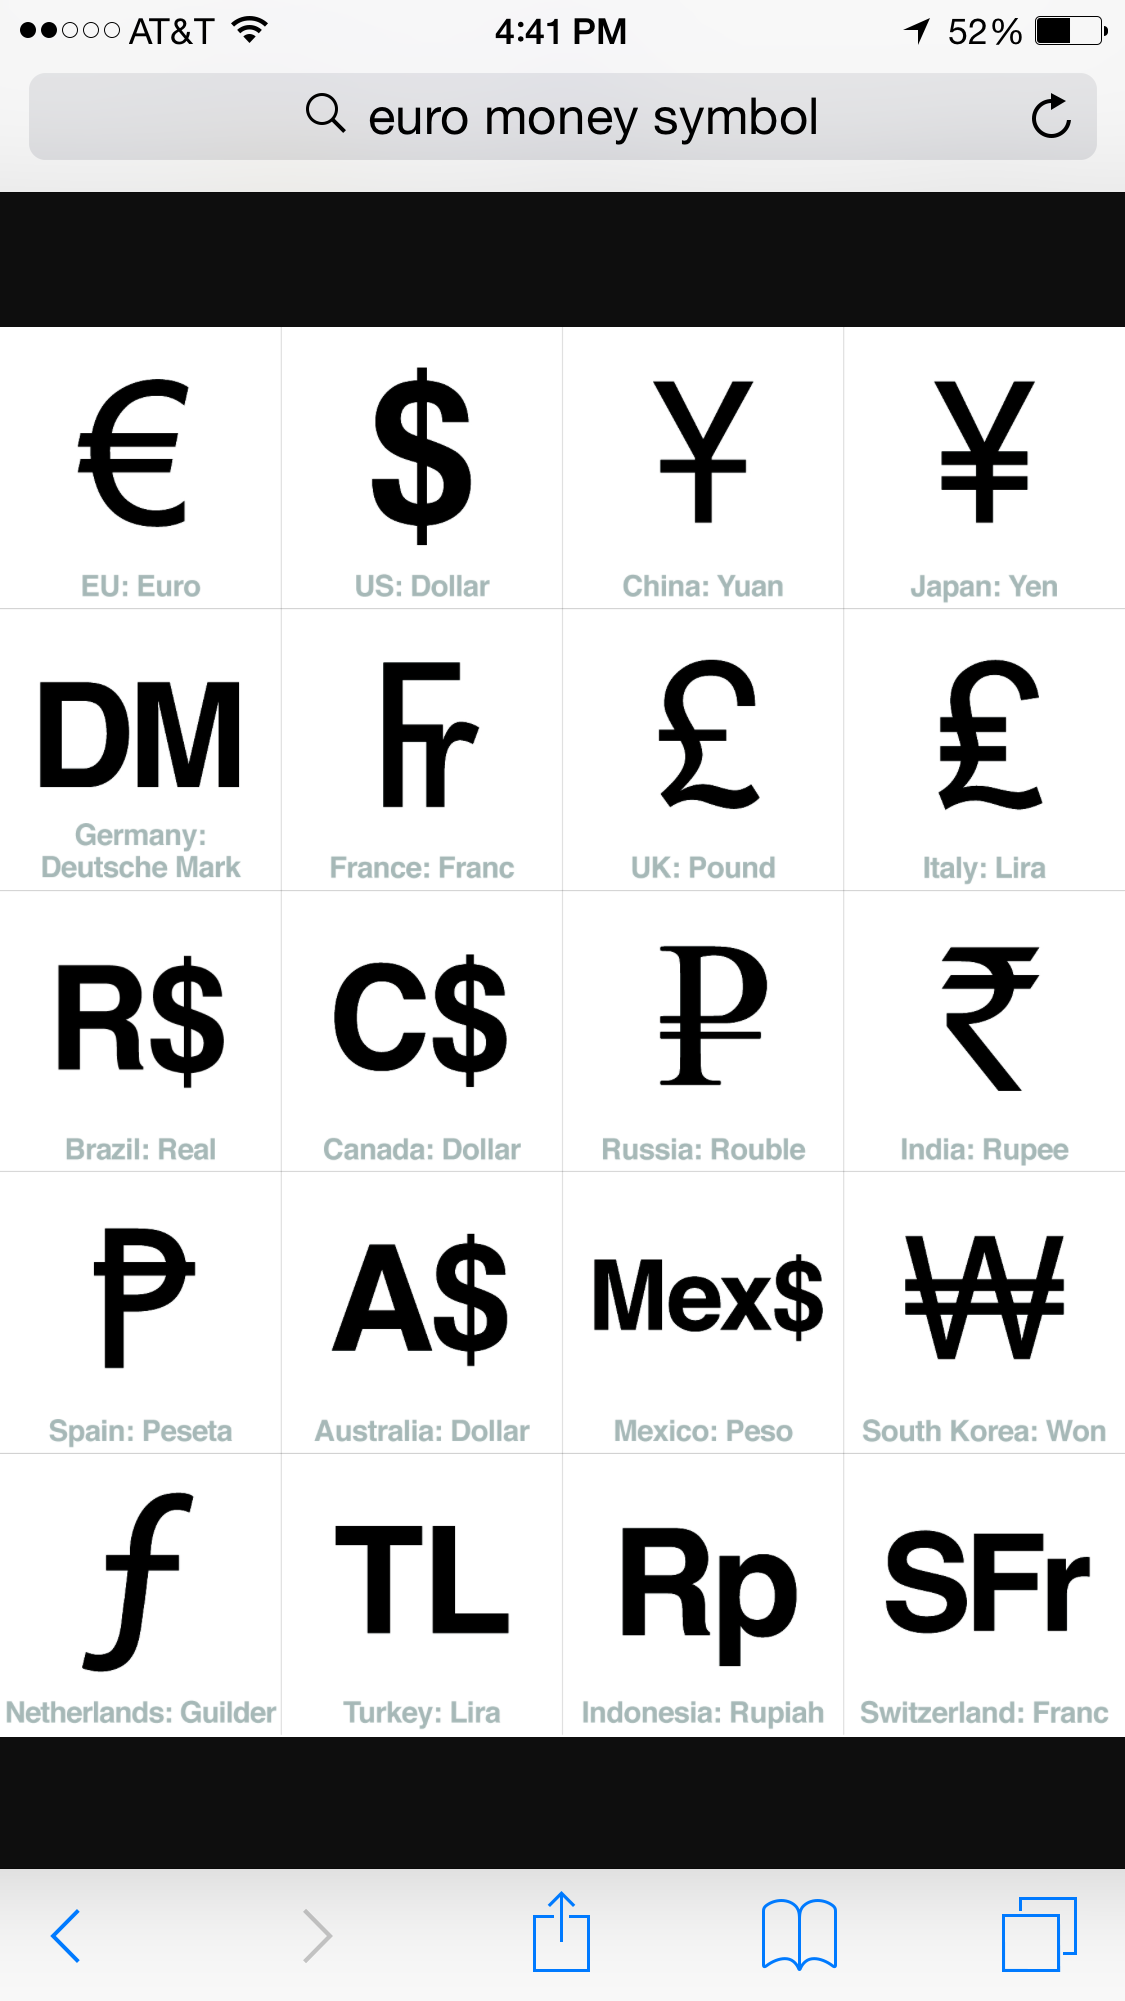 Pin By Noralee Peterson On Abc Pinterest Symbols Currency